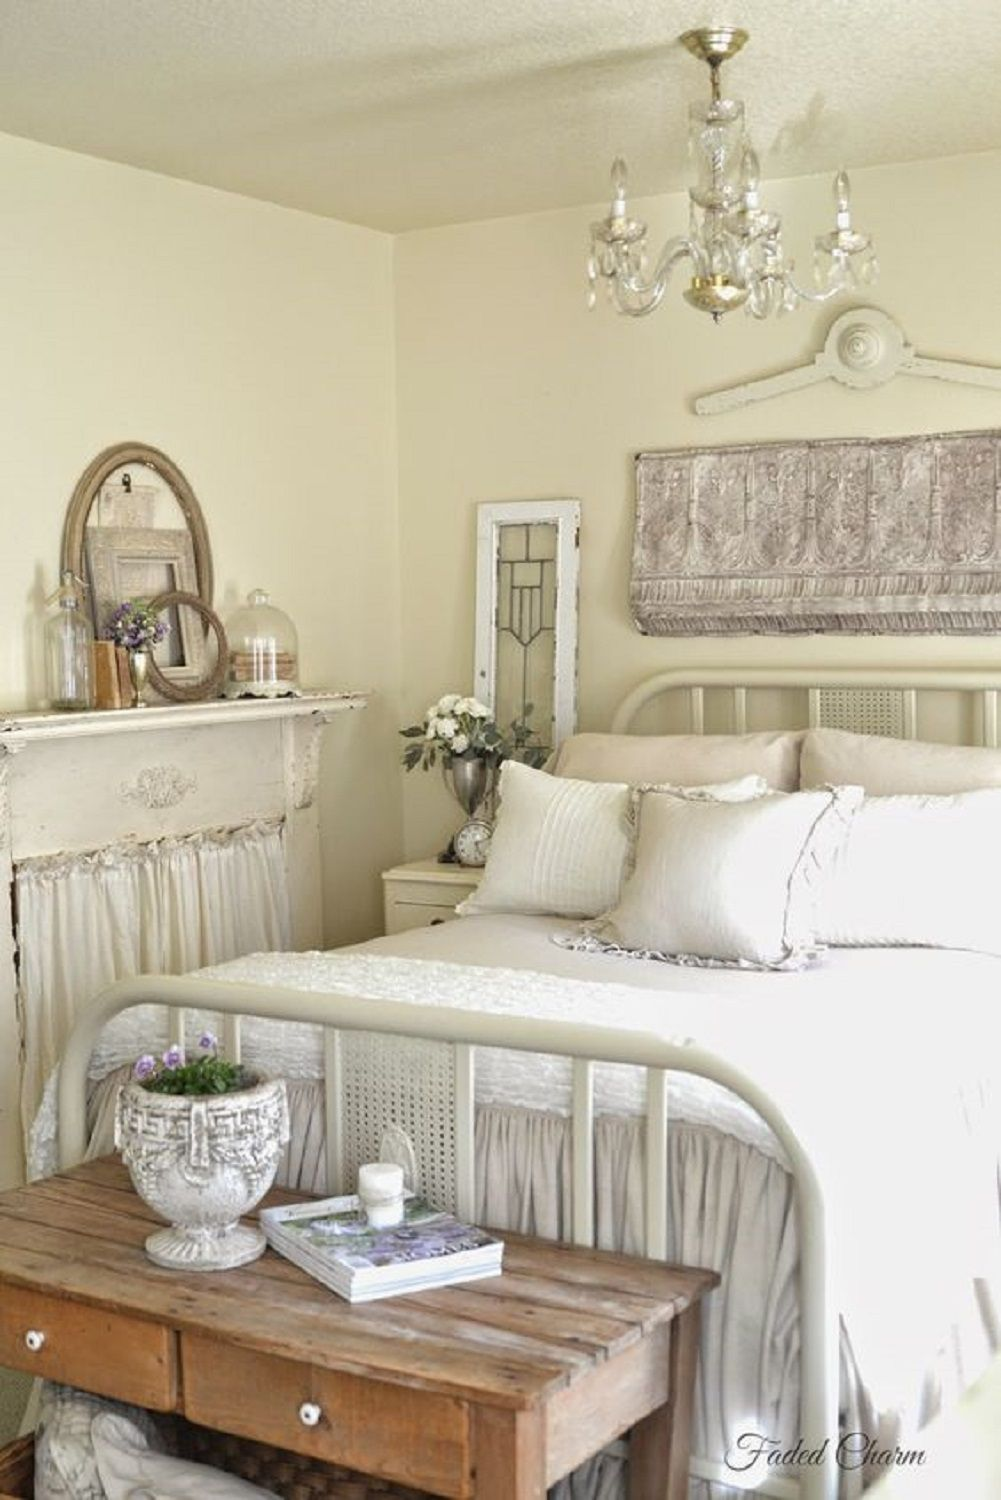 There are many ways to decorate. French Country Bedroom Decorating Ideas and Photos